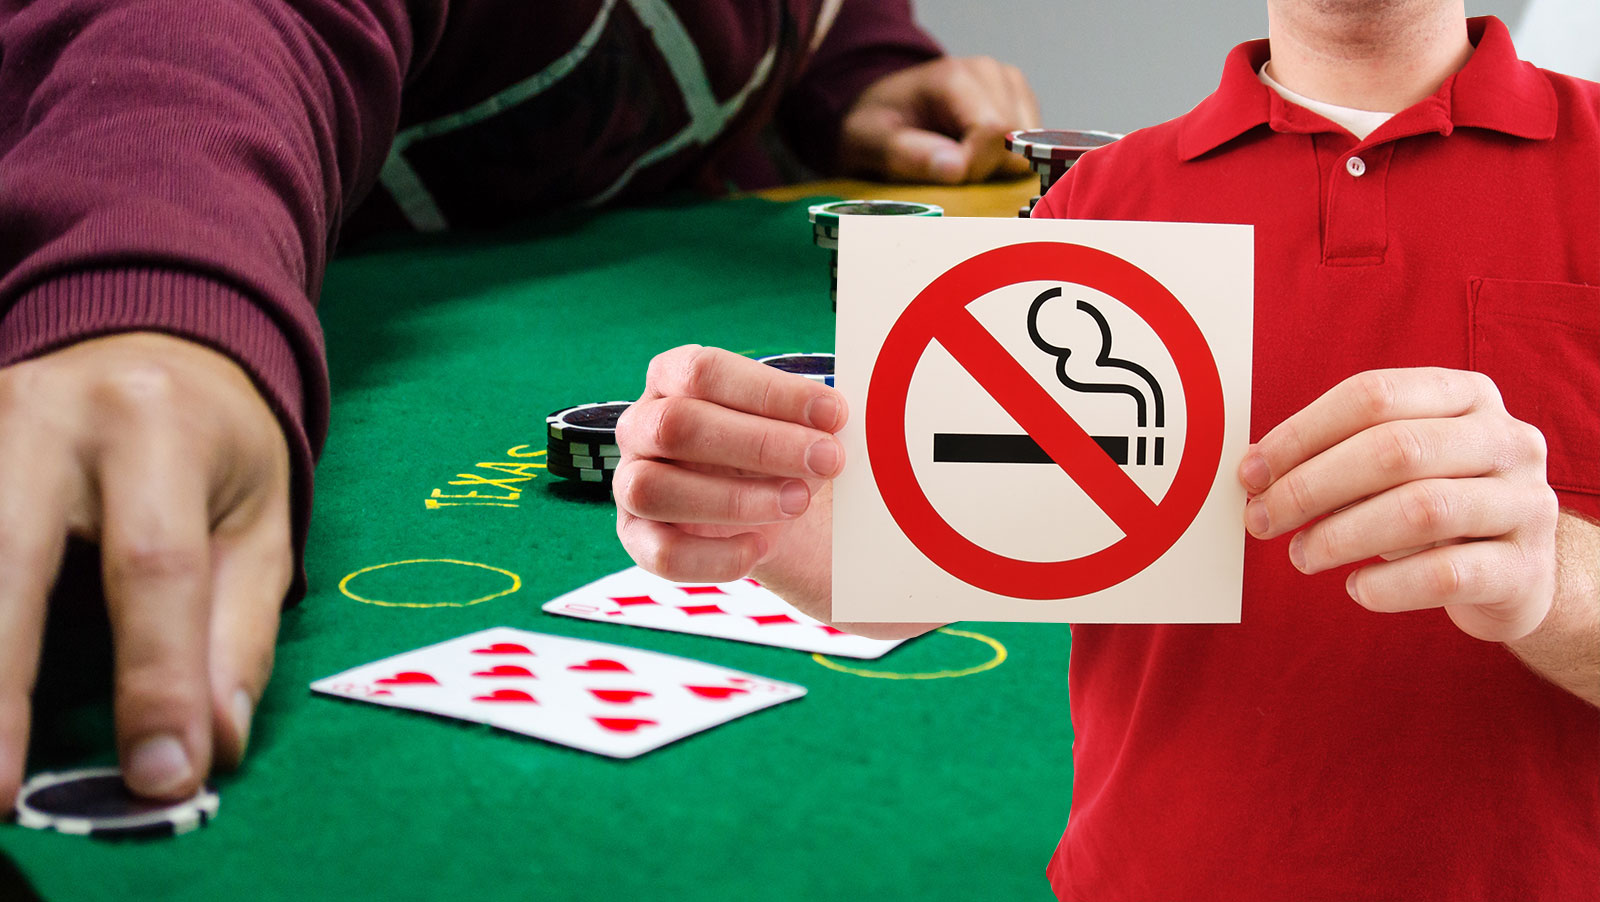 Macau gamblers increasingly break casino no-smoking rules